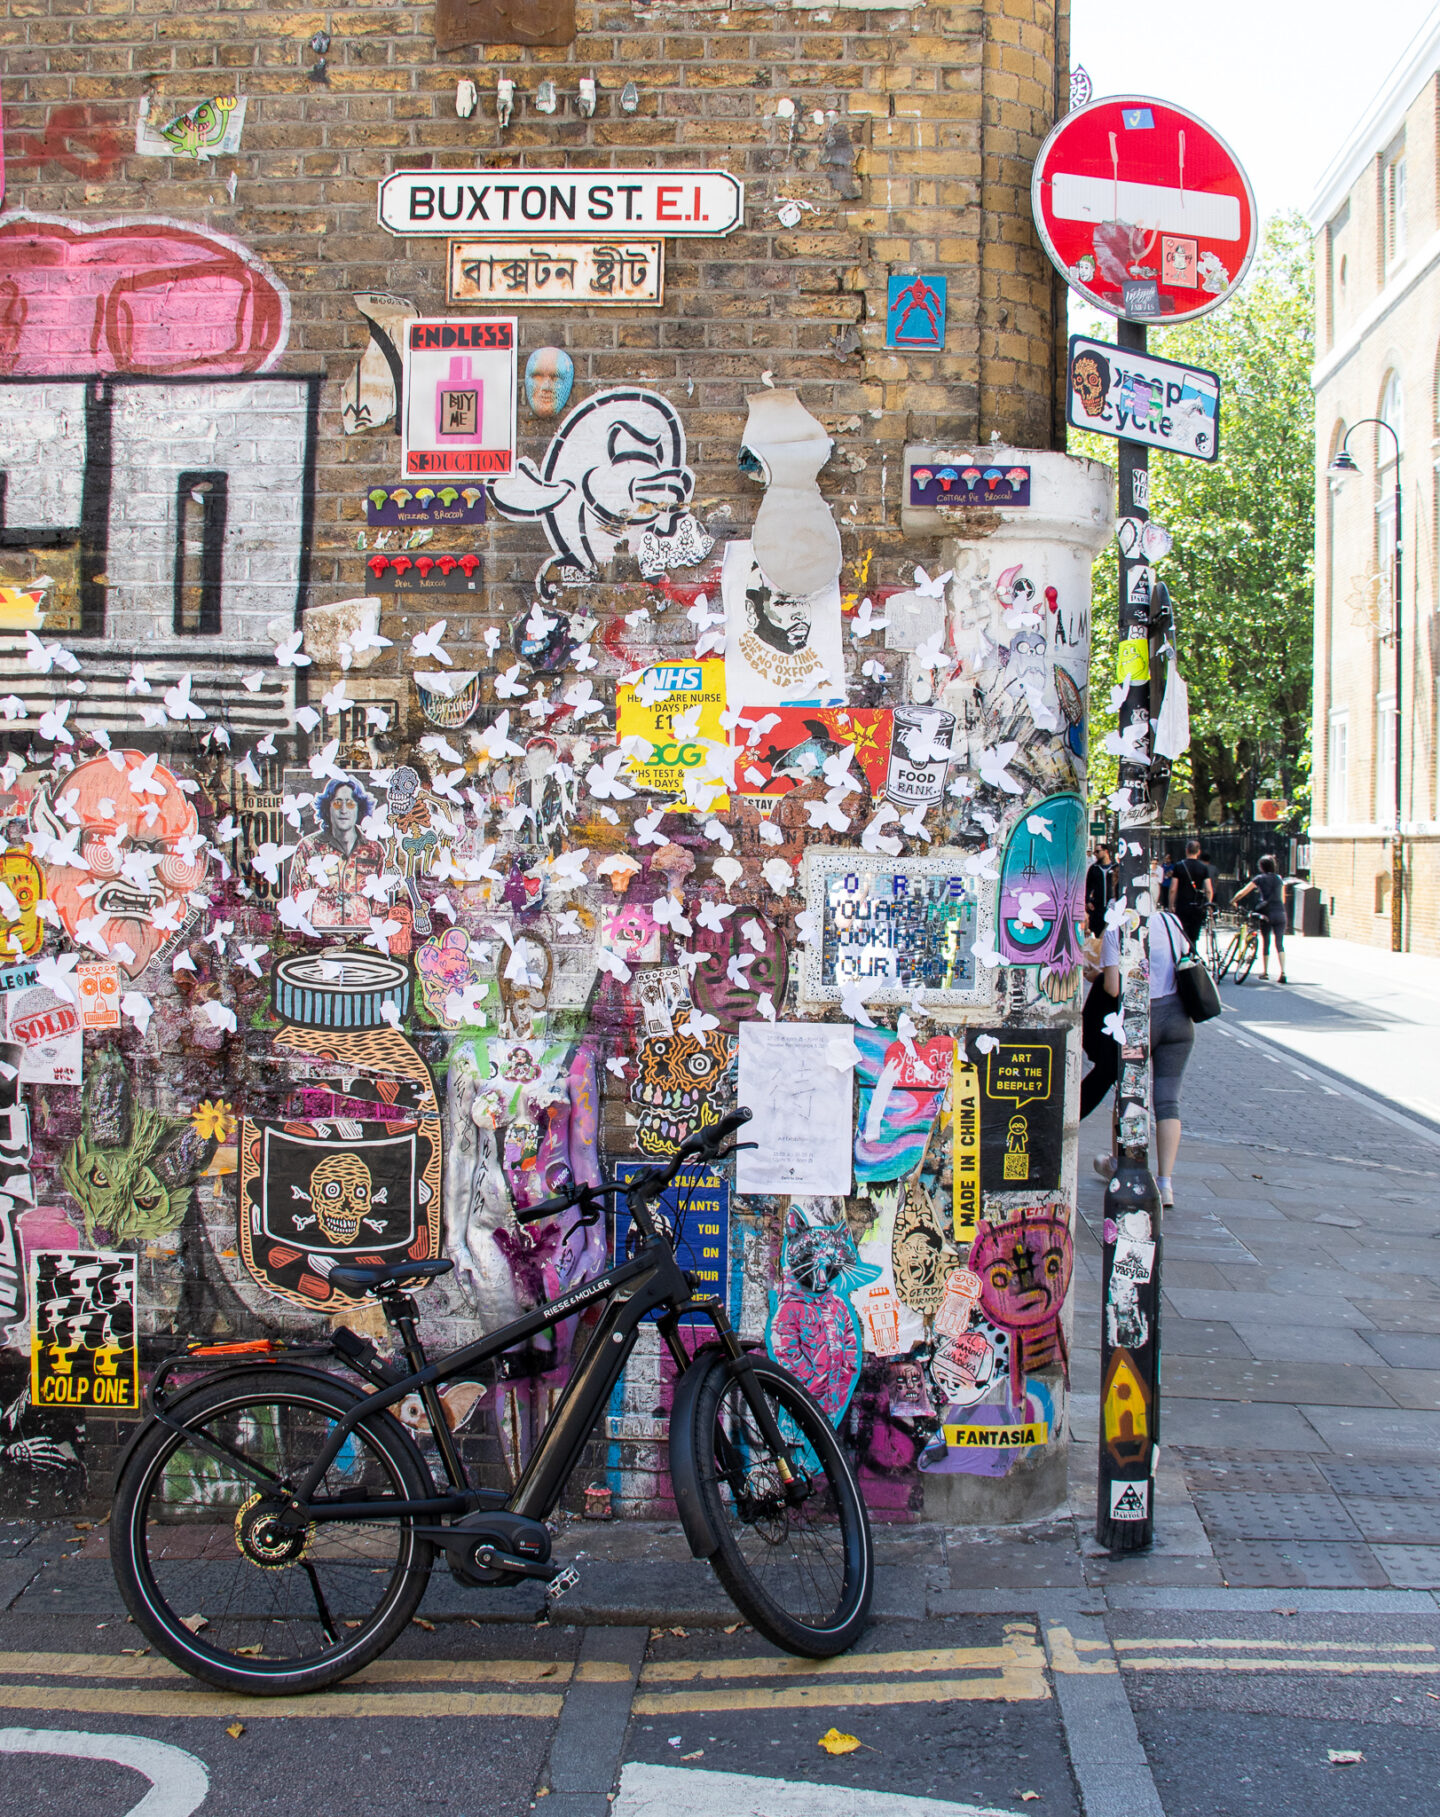 Buxton Street is a hot spot for informal street art and graffiti. The walls are covered in colourful and thought provoking art works.